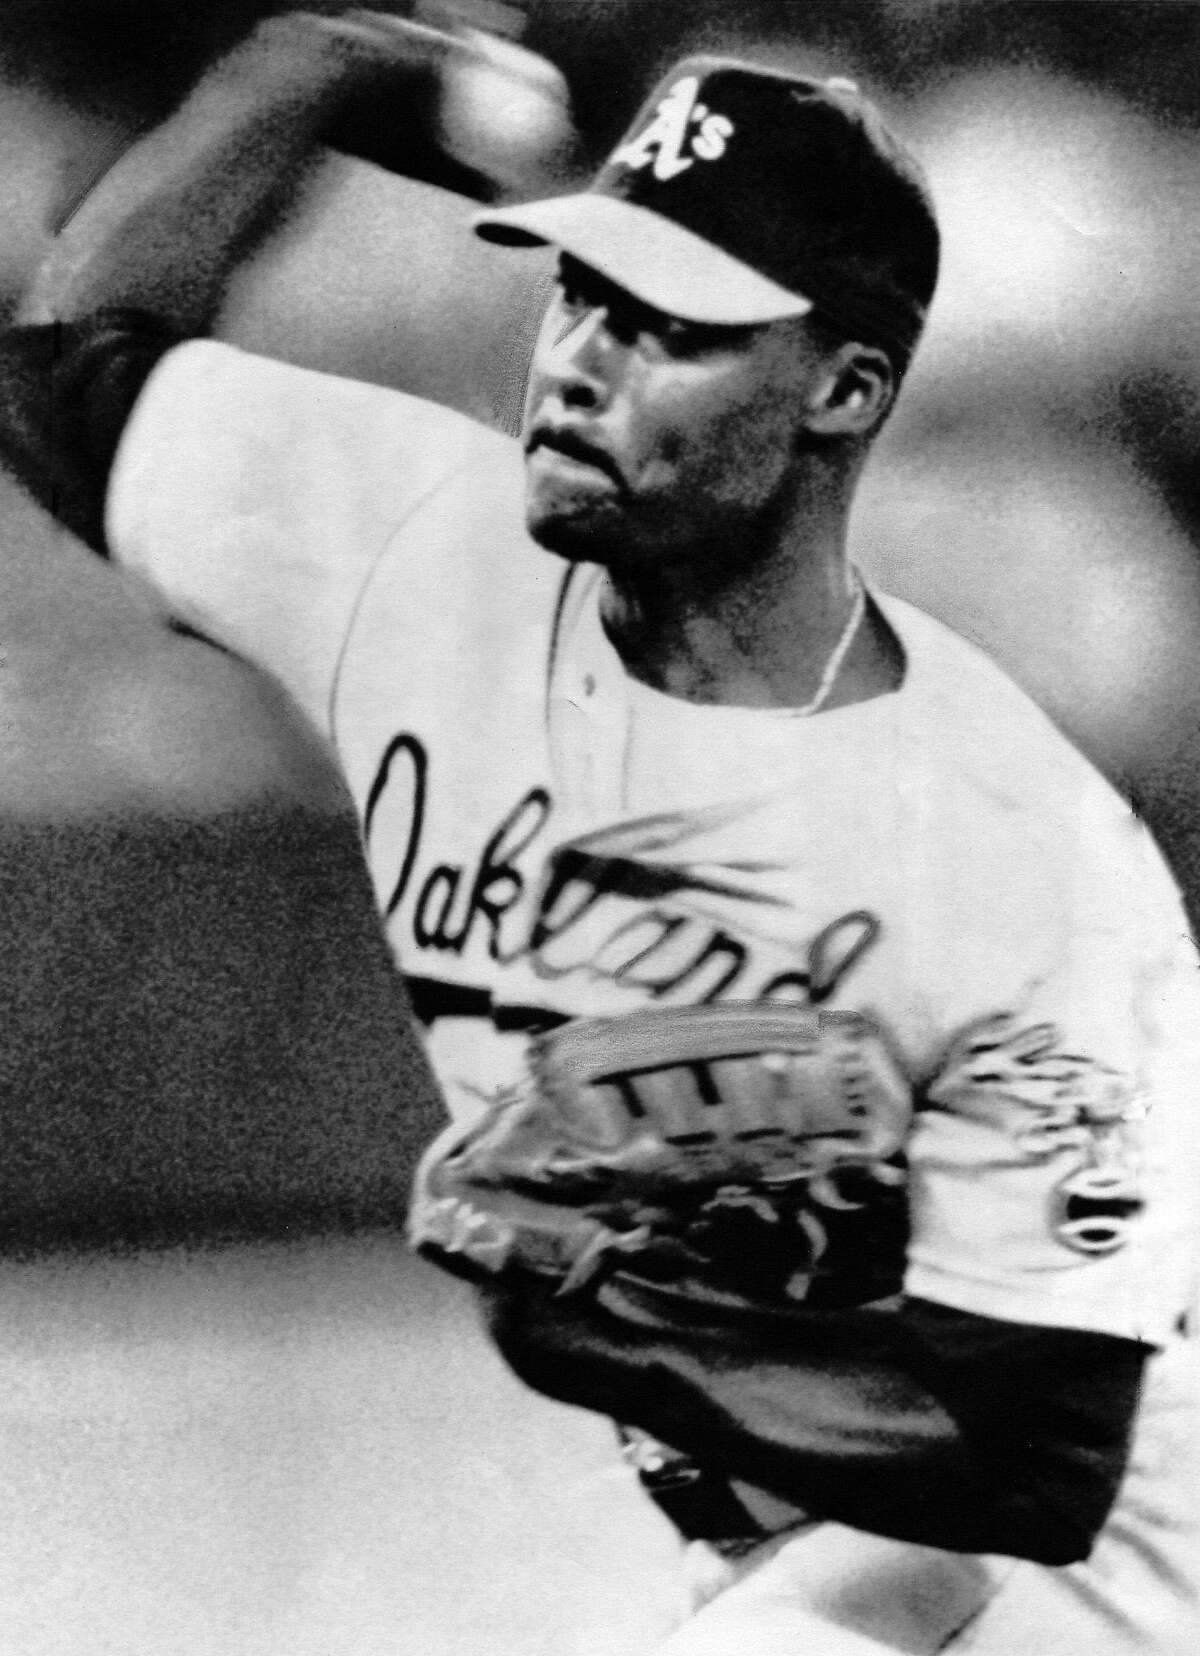 Oakland A's pitcher Dave Stewart pitches a no-hitter against the Toronto Blue Jays at the Skydome in Toronto on June 29, 1990. Chronicle file photo